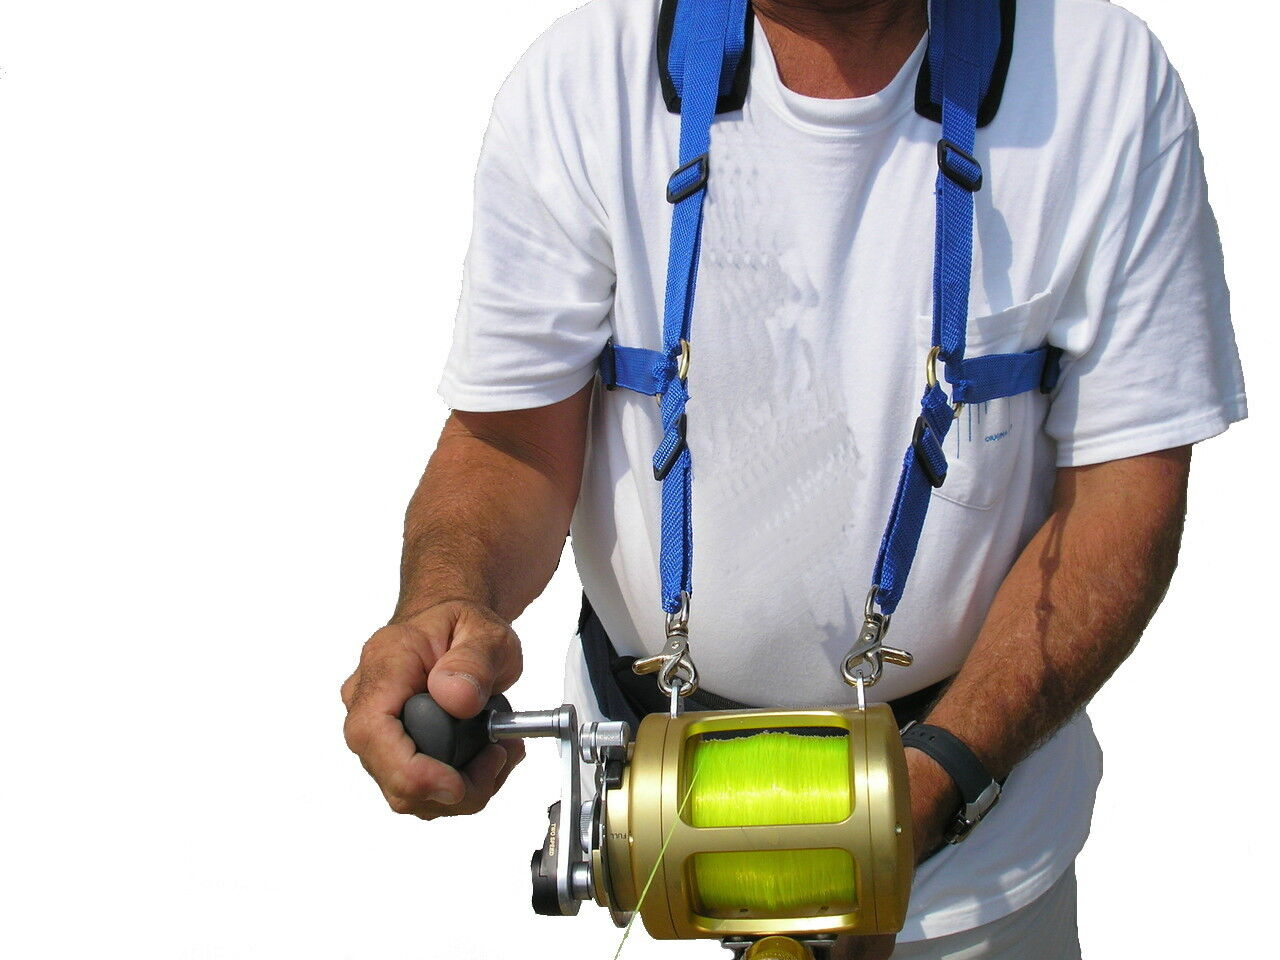 Stand up fishing harness for offshore fishing  and big game reels  various sizes